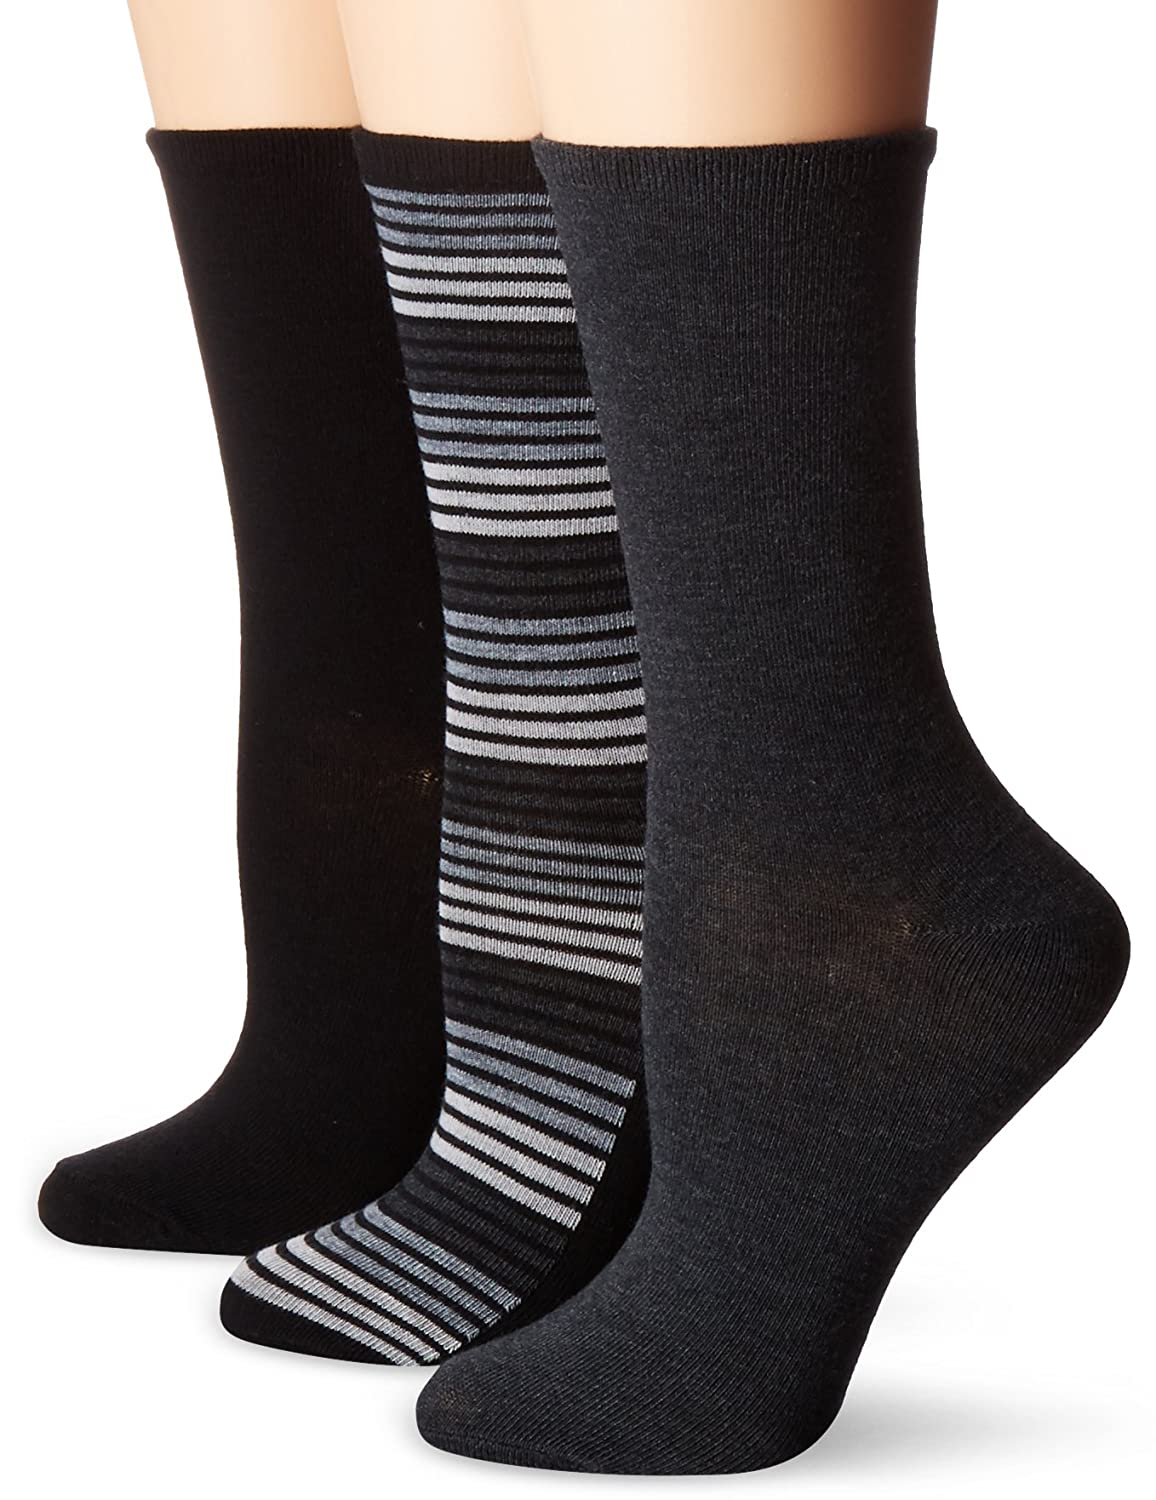 No Nonsense womens Striped Flat Knit Crew Sock 3-pack Black/Grey 4-10 NS6769